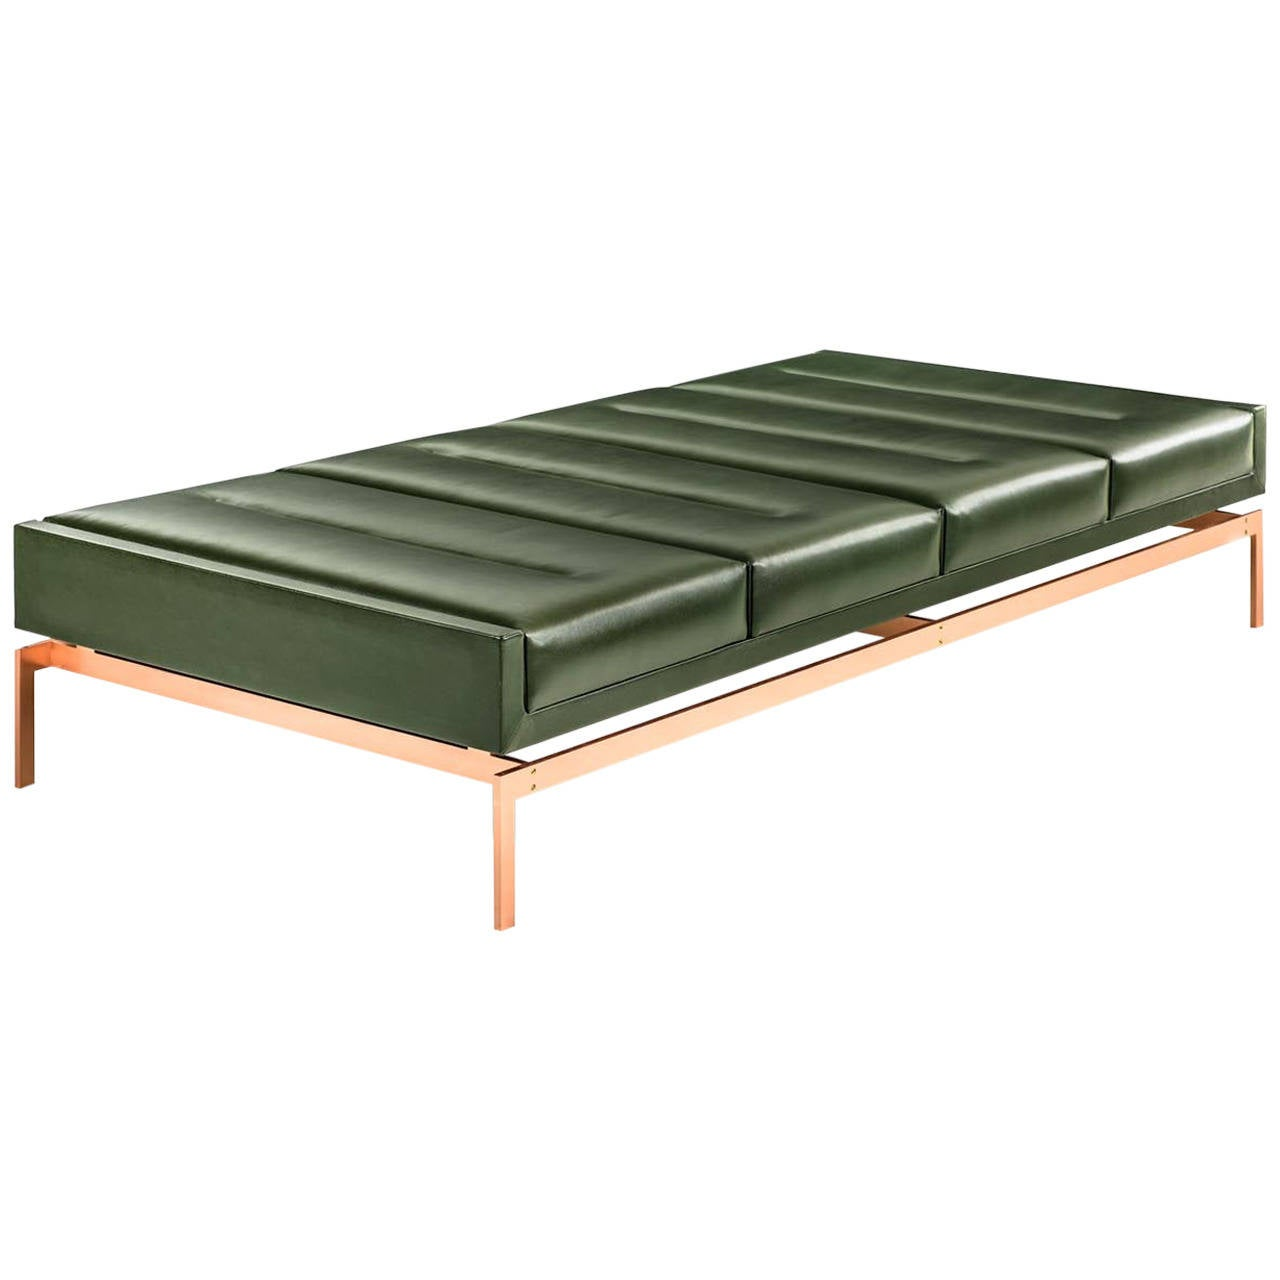 Olivera chaise longue daybed bench with green leather Daybed bench